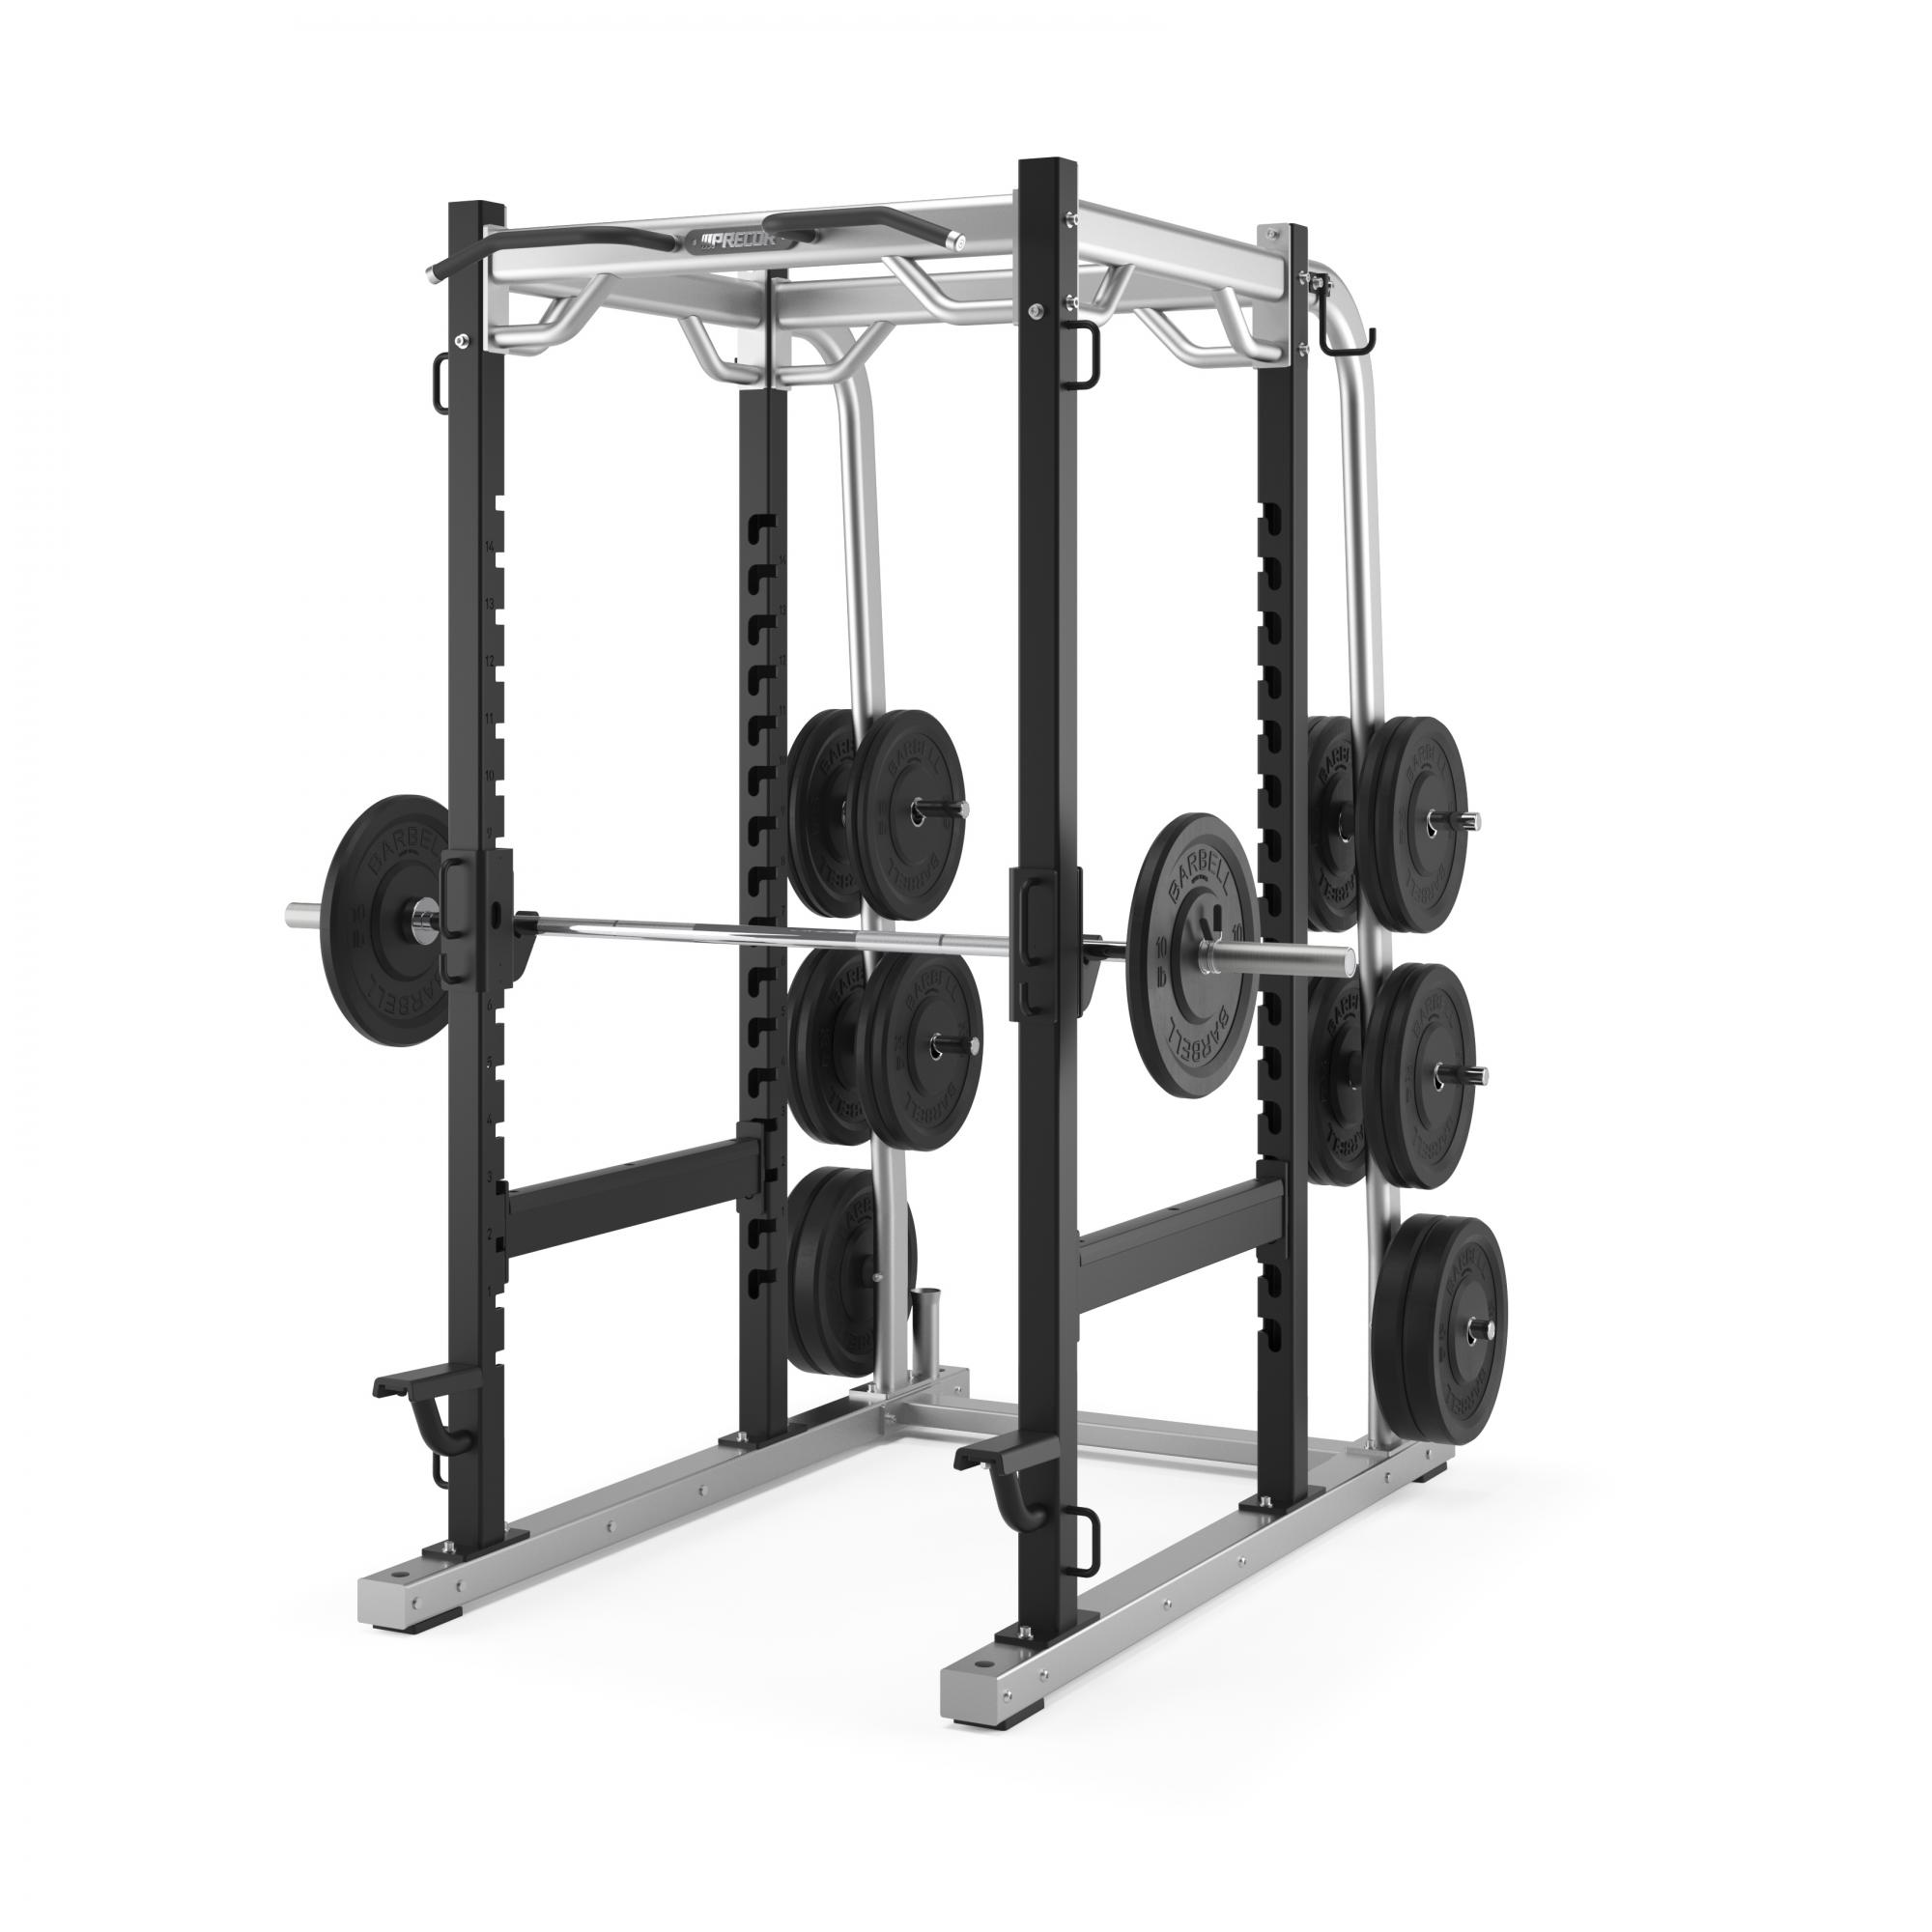 weight marcy bench olympic sports petitor com cb of cute aifaresidency for authority pro